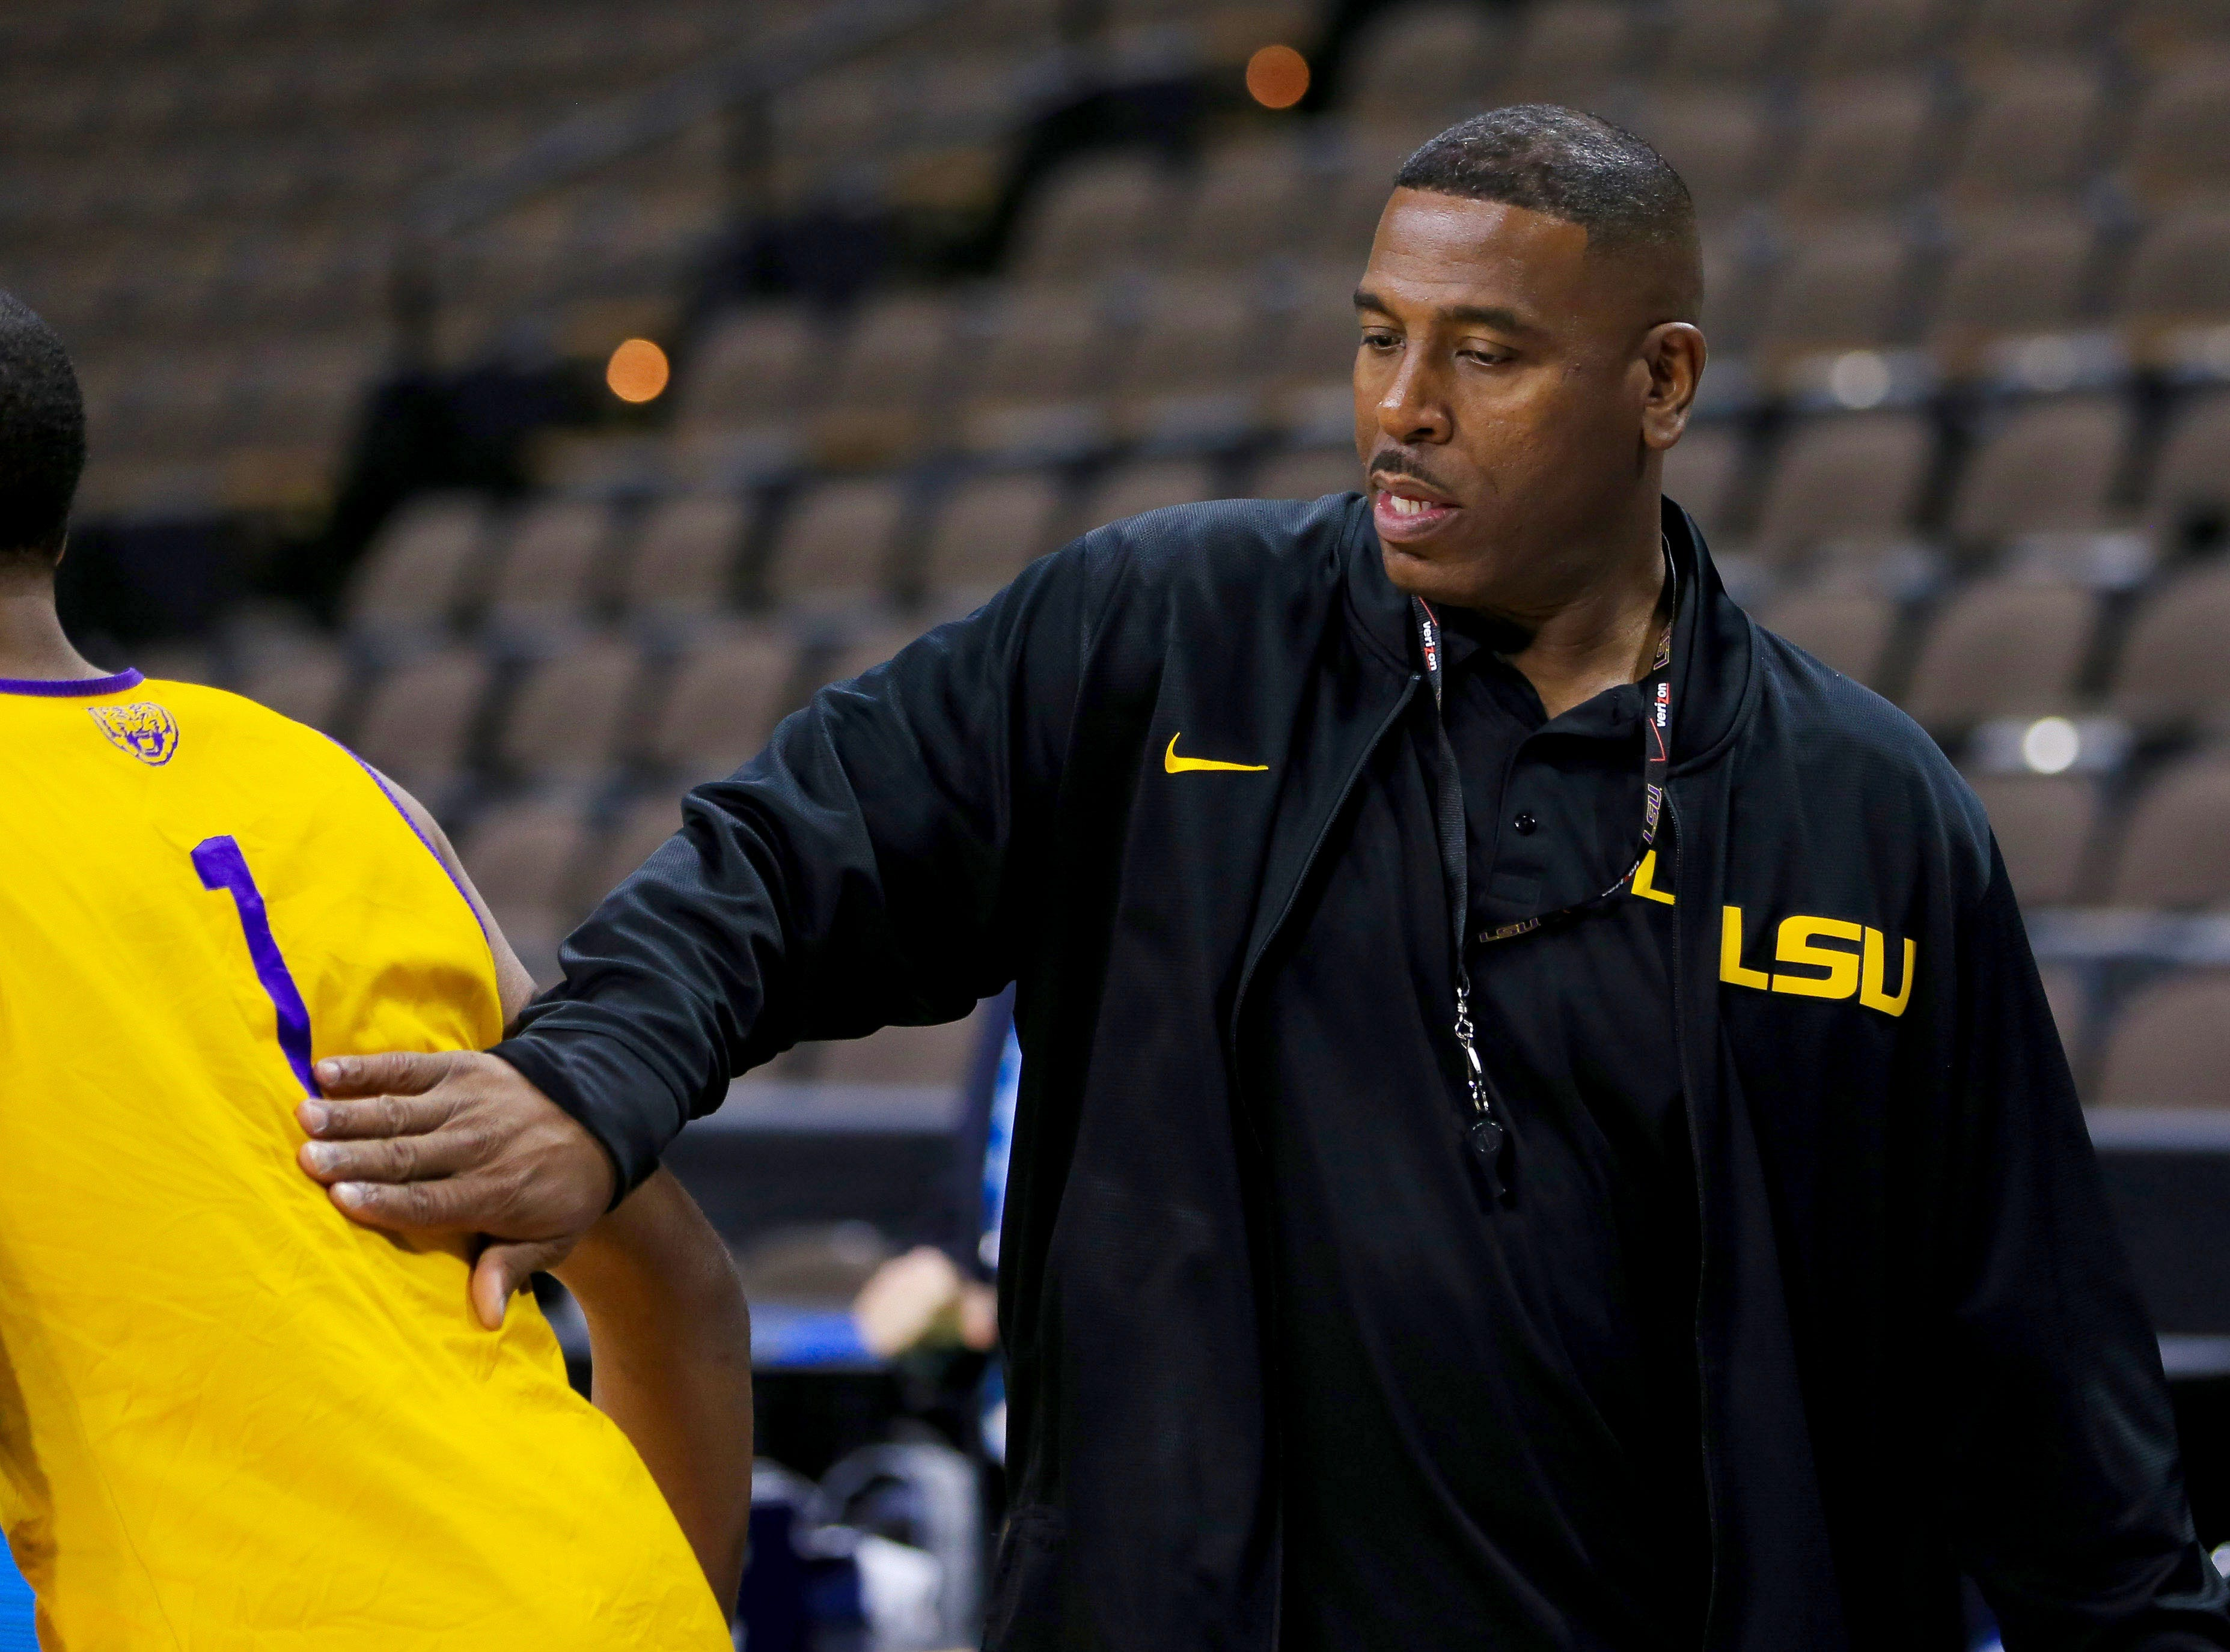 Mar 20, 2019; Jacksonville, FL, USA; LSU Tigers interim head coach Tony Benford during practice day before the first round of the 2019 NCAA Tournament at Jacksonville Veterans Memorial Arena. Mandatory Credit: Matt Stamey-USA TODAY Sports